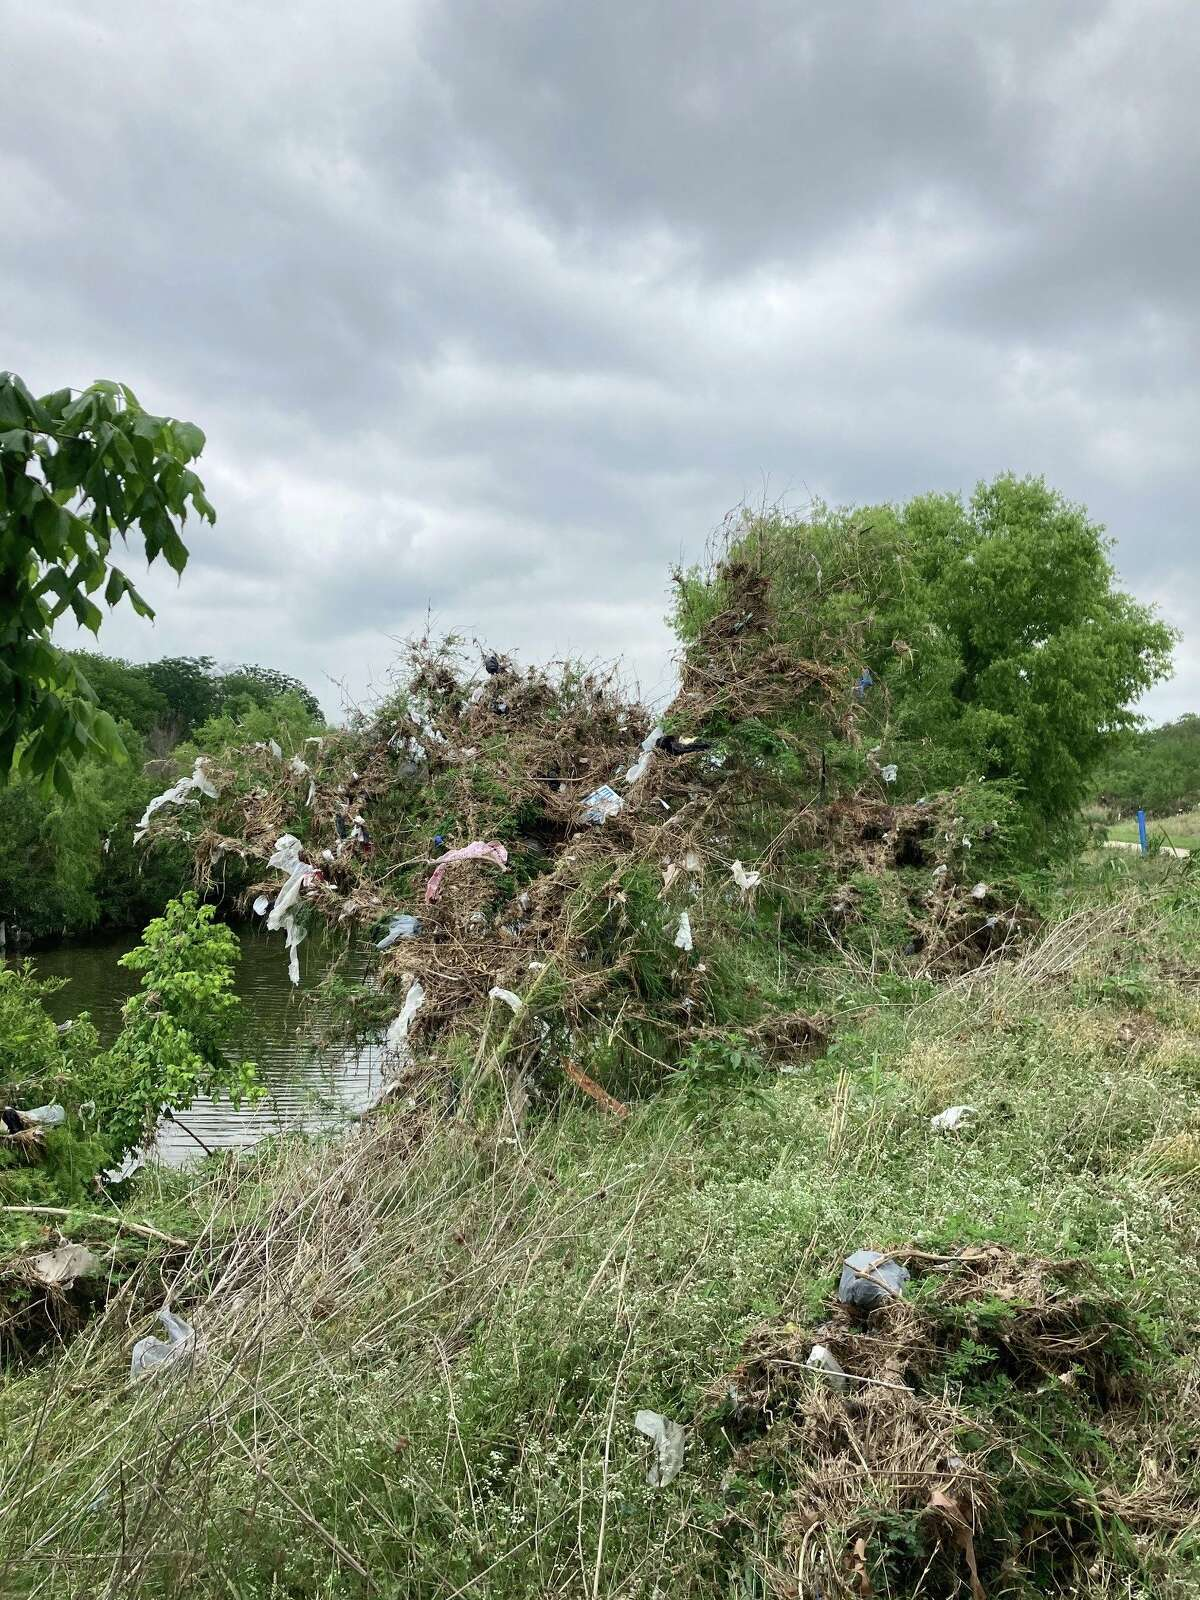 In the past two days (not including Wednesday), around 60 staff members and contractors with the San Antonio River Authority (SARA) have picked up more than 17,000 pounds of trash along the San Antonio River Basin, specifically in the Mission Reach area that extends south of the downtown section.